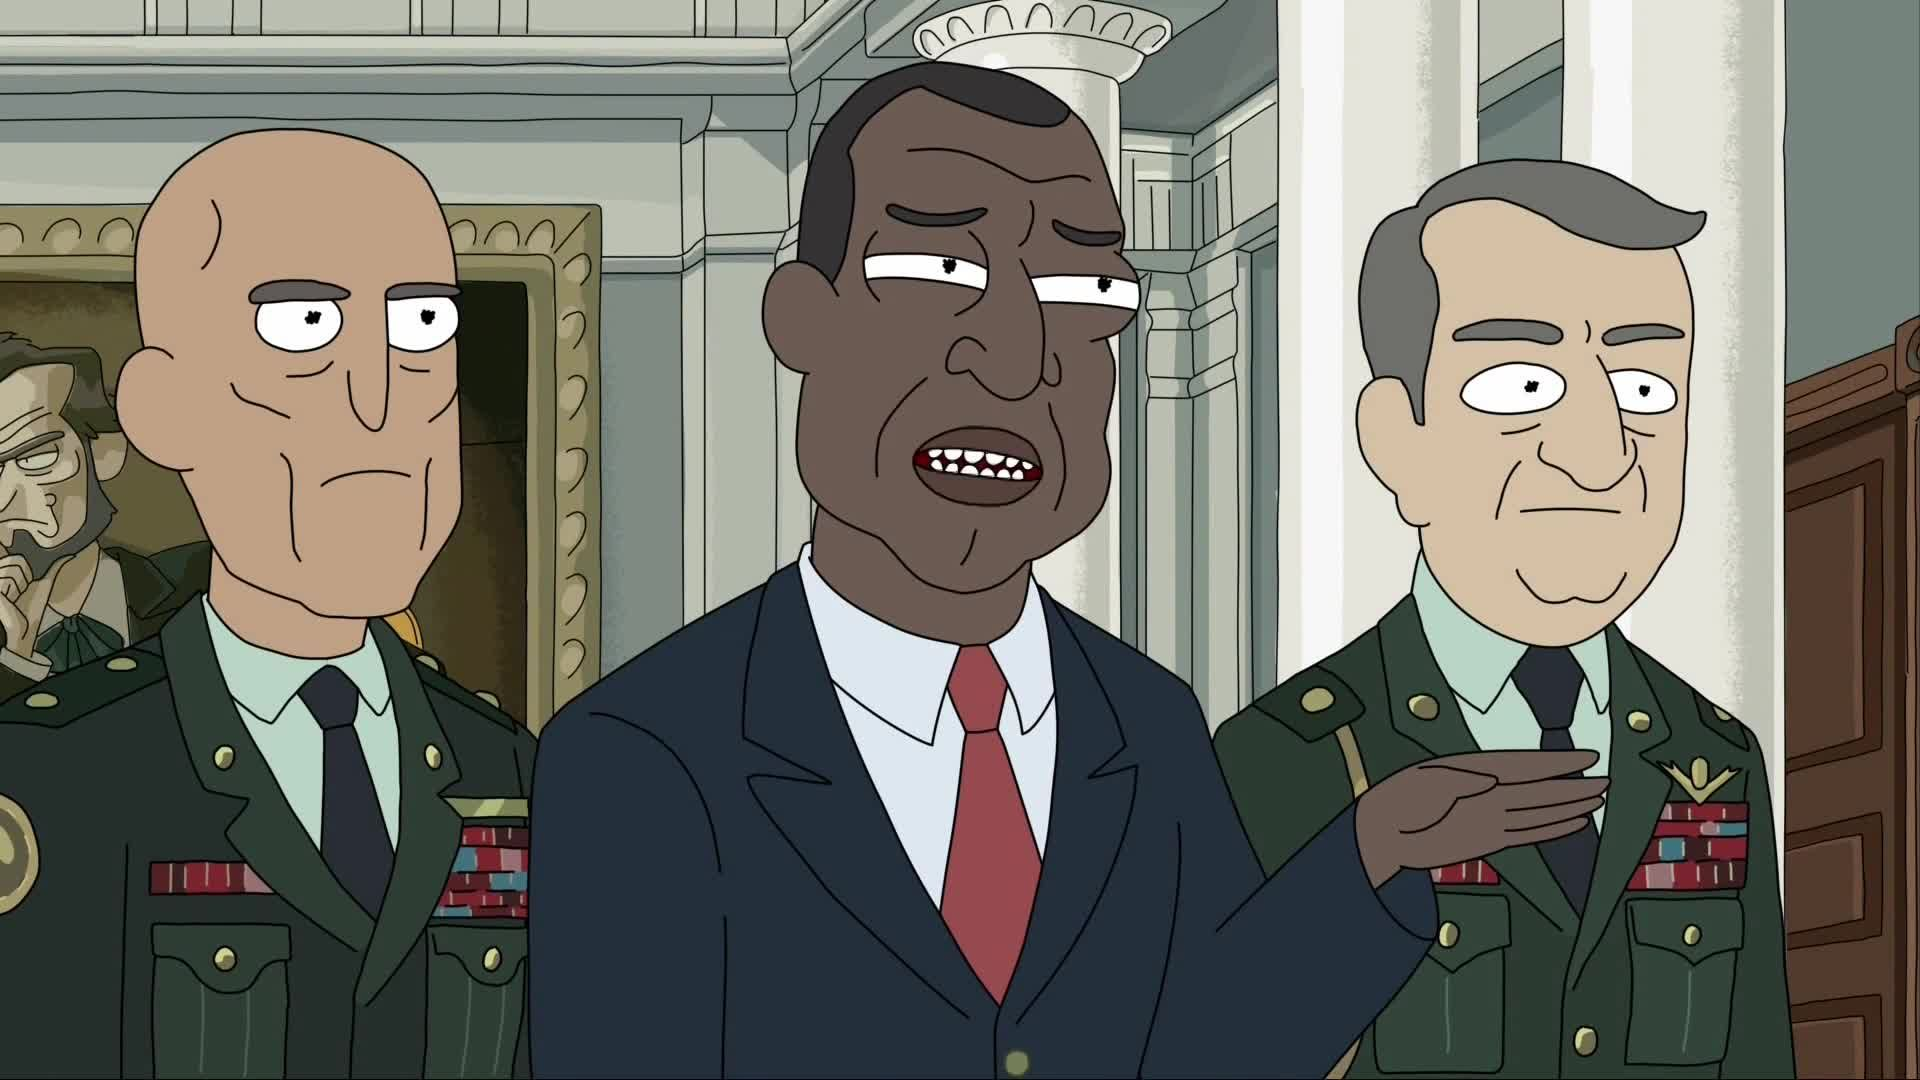 Rick goes on a confrontation with the President.